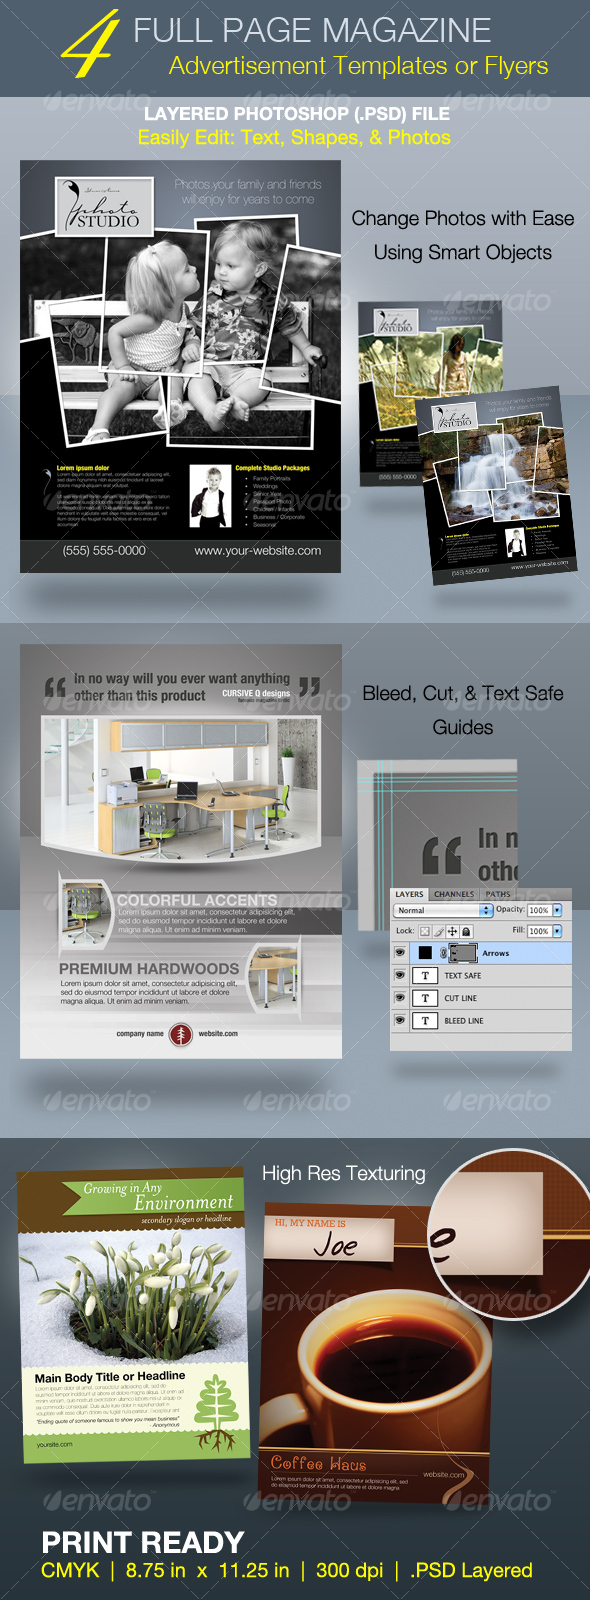 Full Page Magazine Ad or Flyer Templates - Commerce Flyers